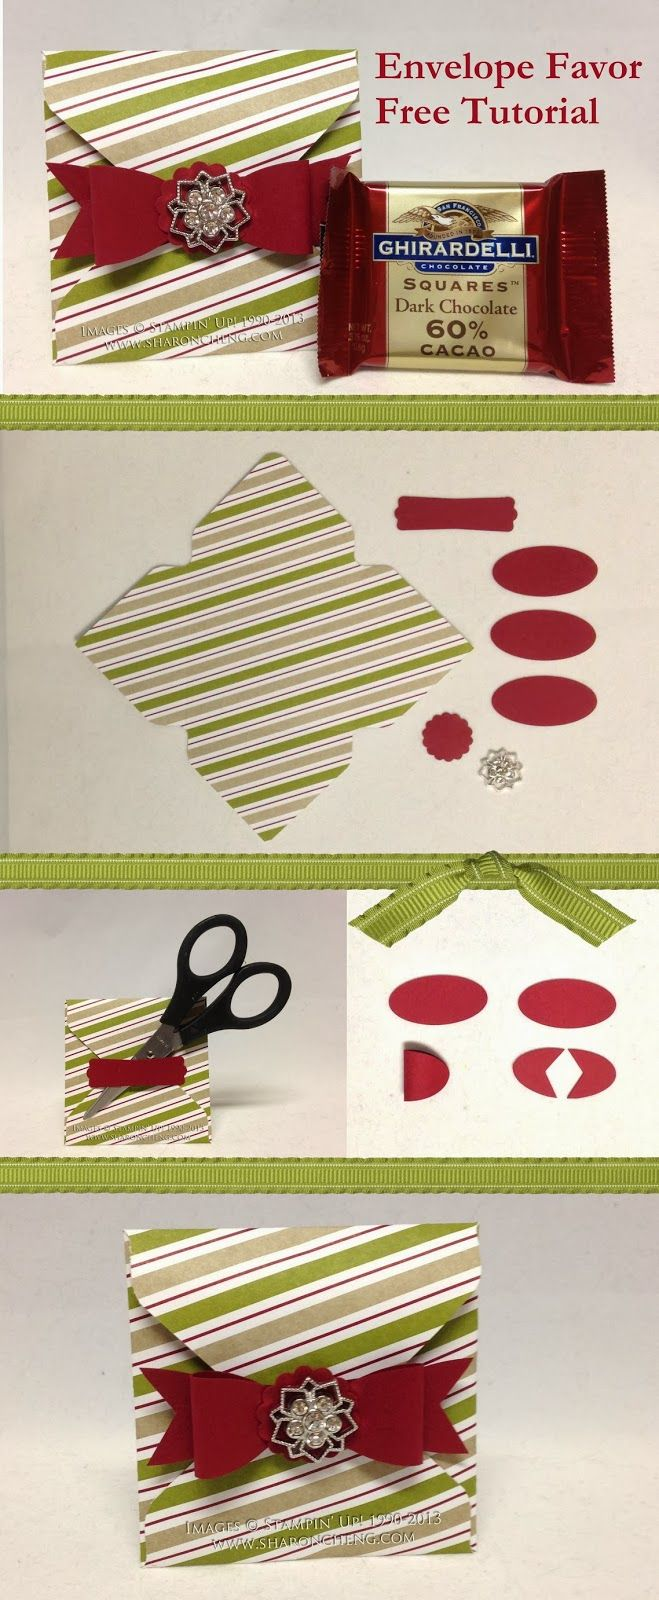 Envelope Favor with Free Tutorial